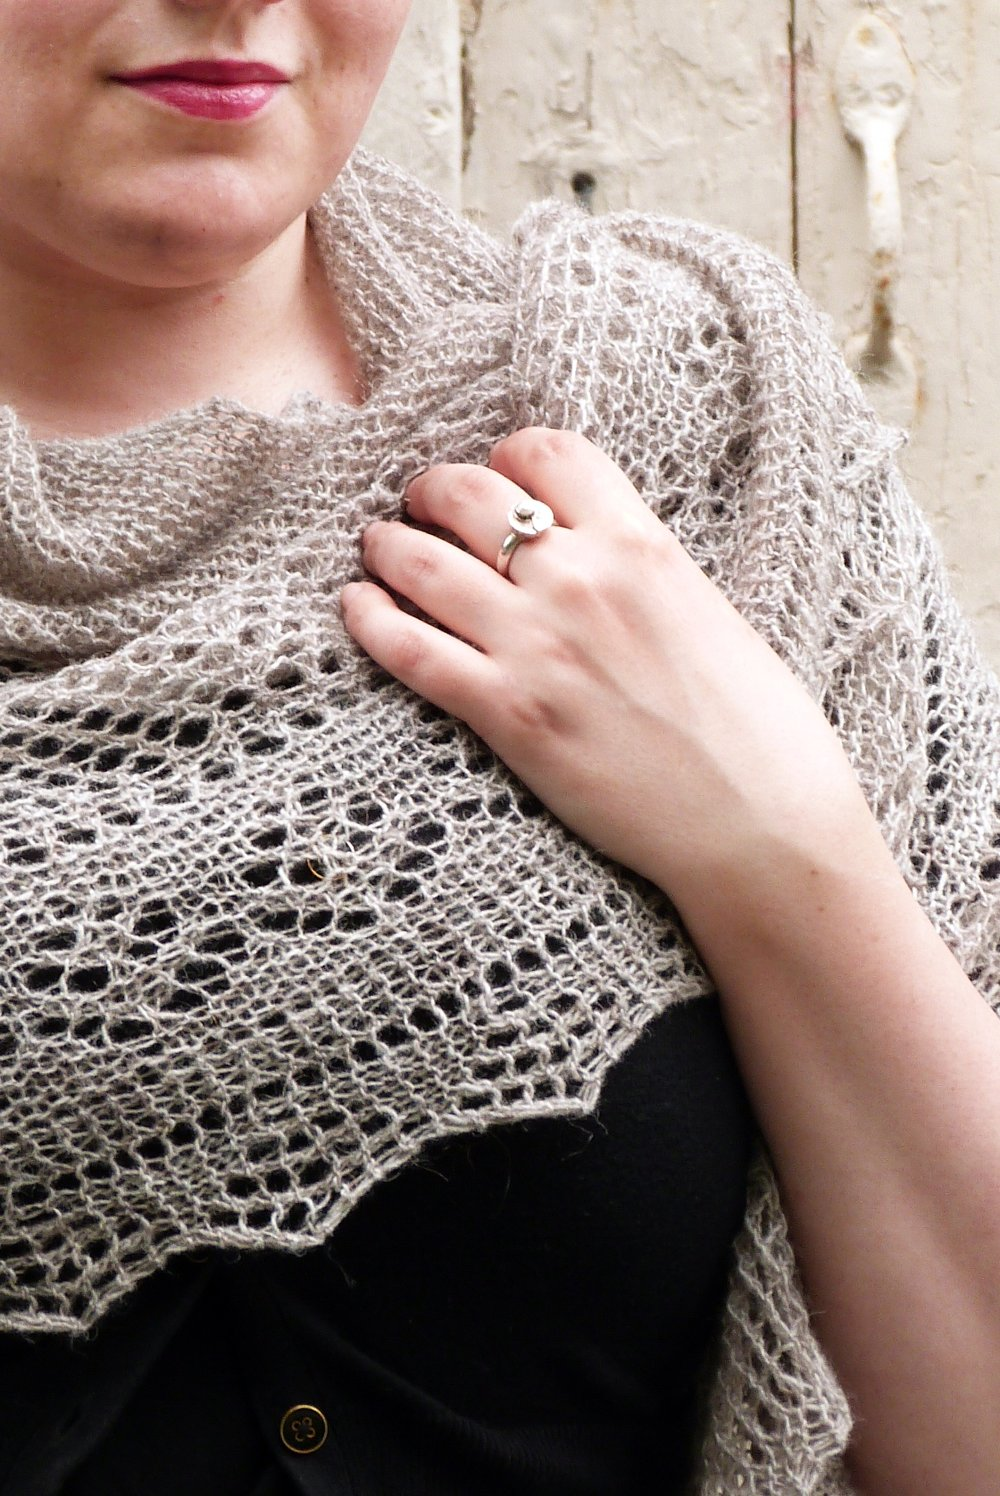 Karie Westermann's stunning Mahy shawl uses the hap construction techniques taught in her class.